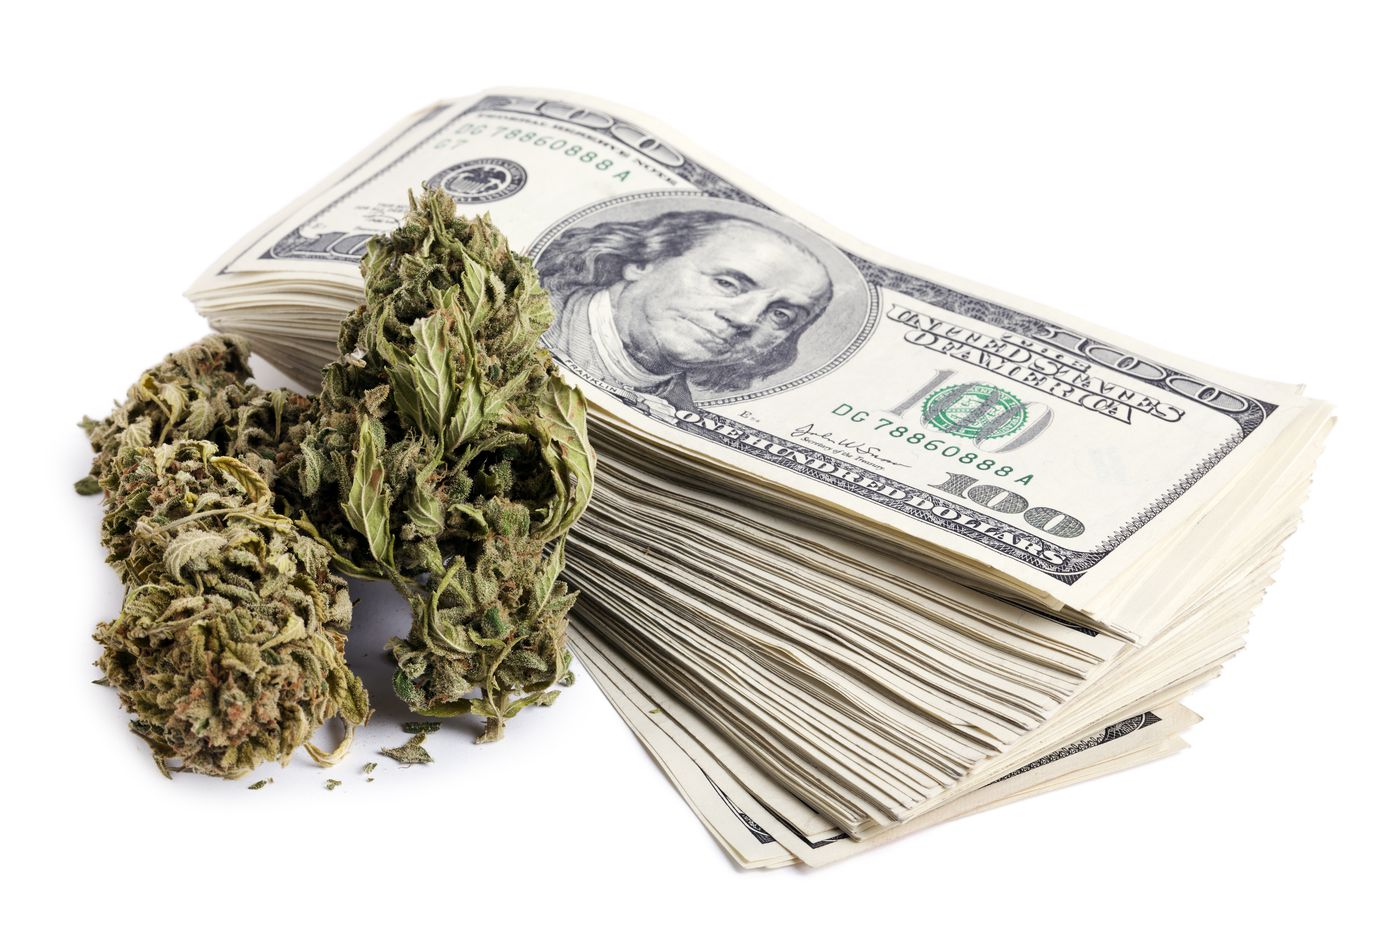 With billions in marijuana cash unbanked, Pa. leads an appeal to Congress for protections